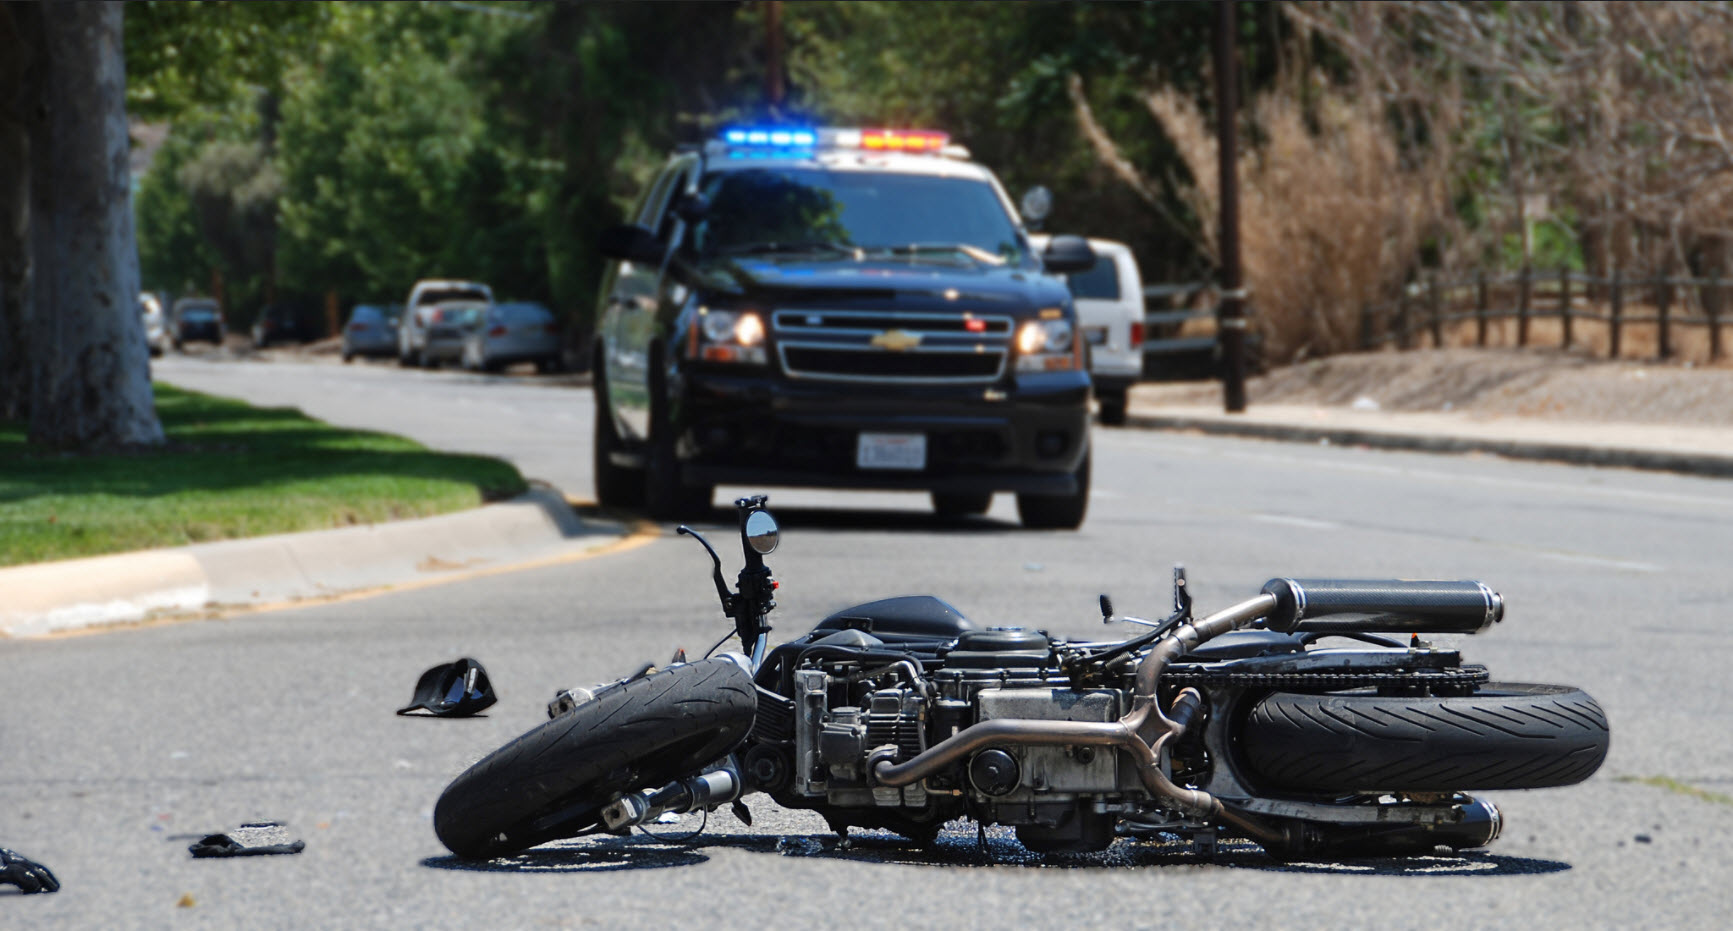 Accidentes de Motocicleta en Houston